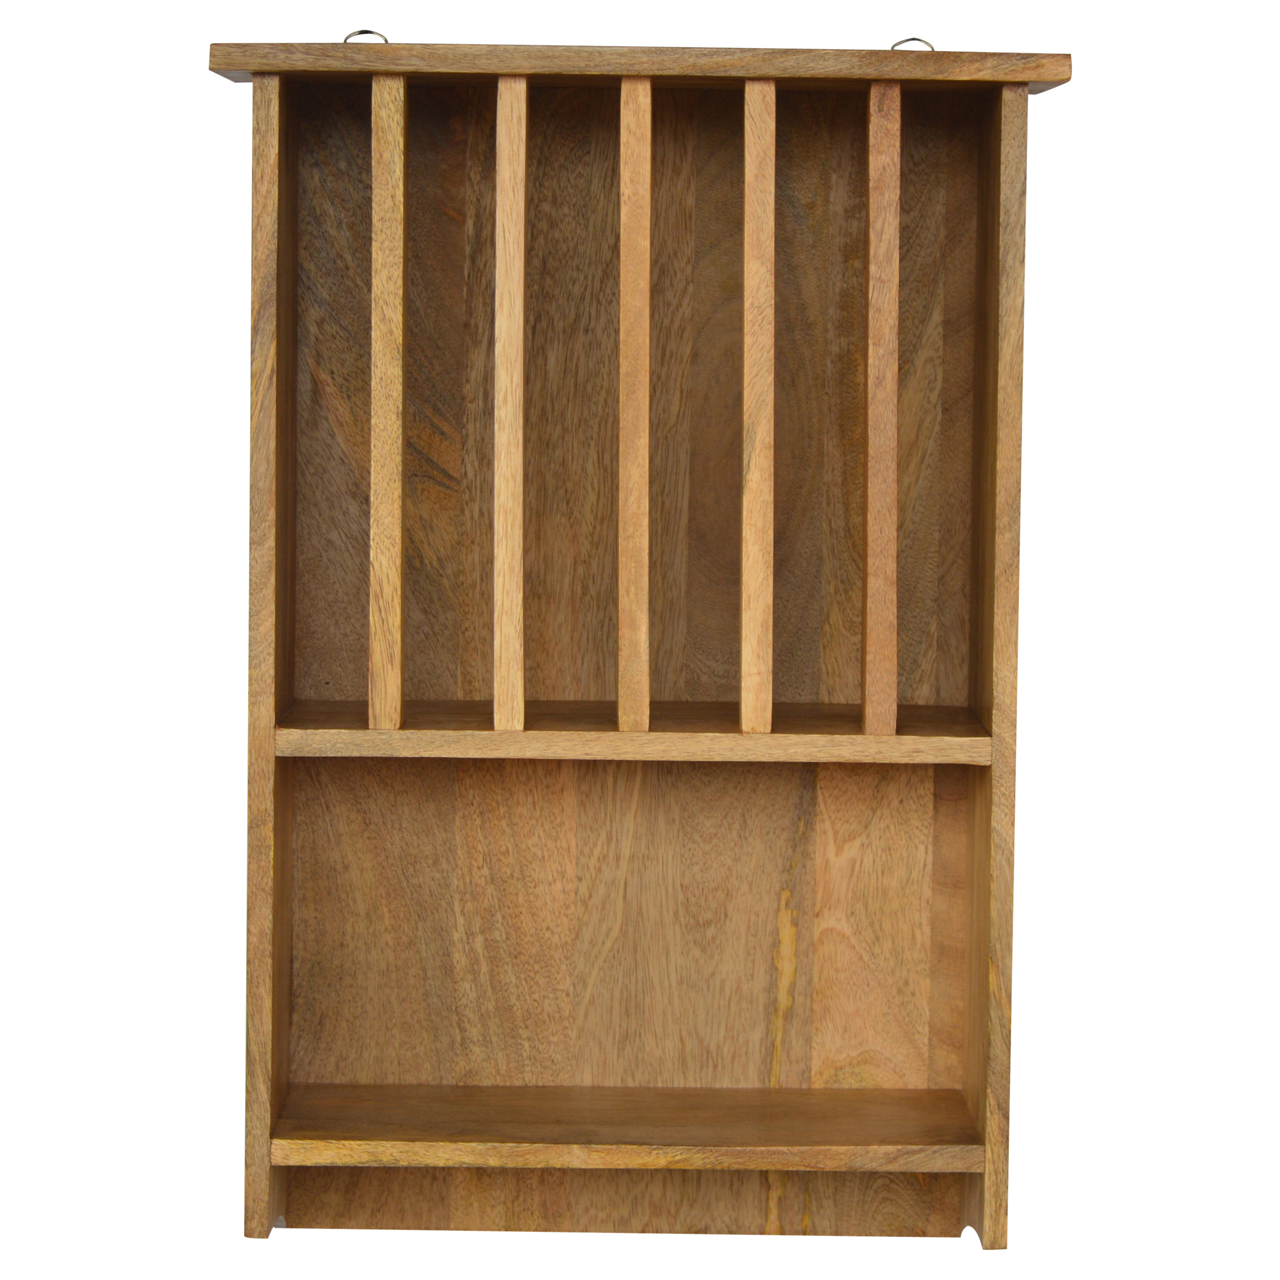 IN169 Wall Mounted Kitchen Plate Rack